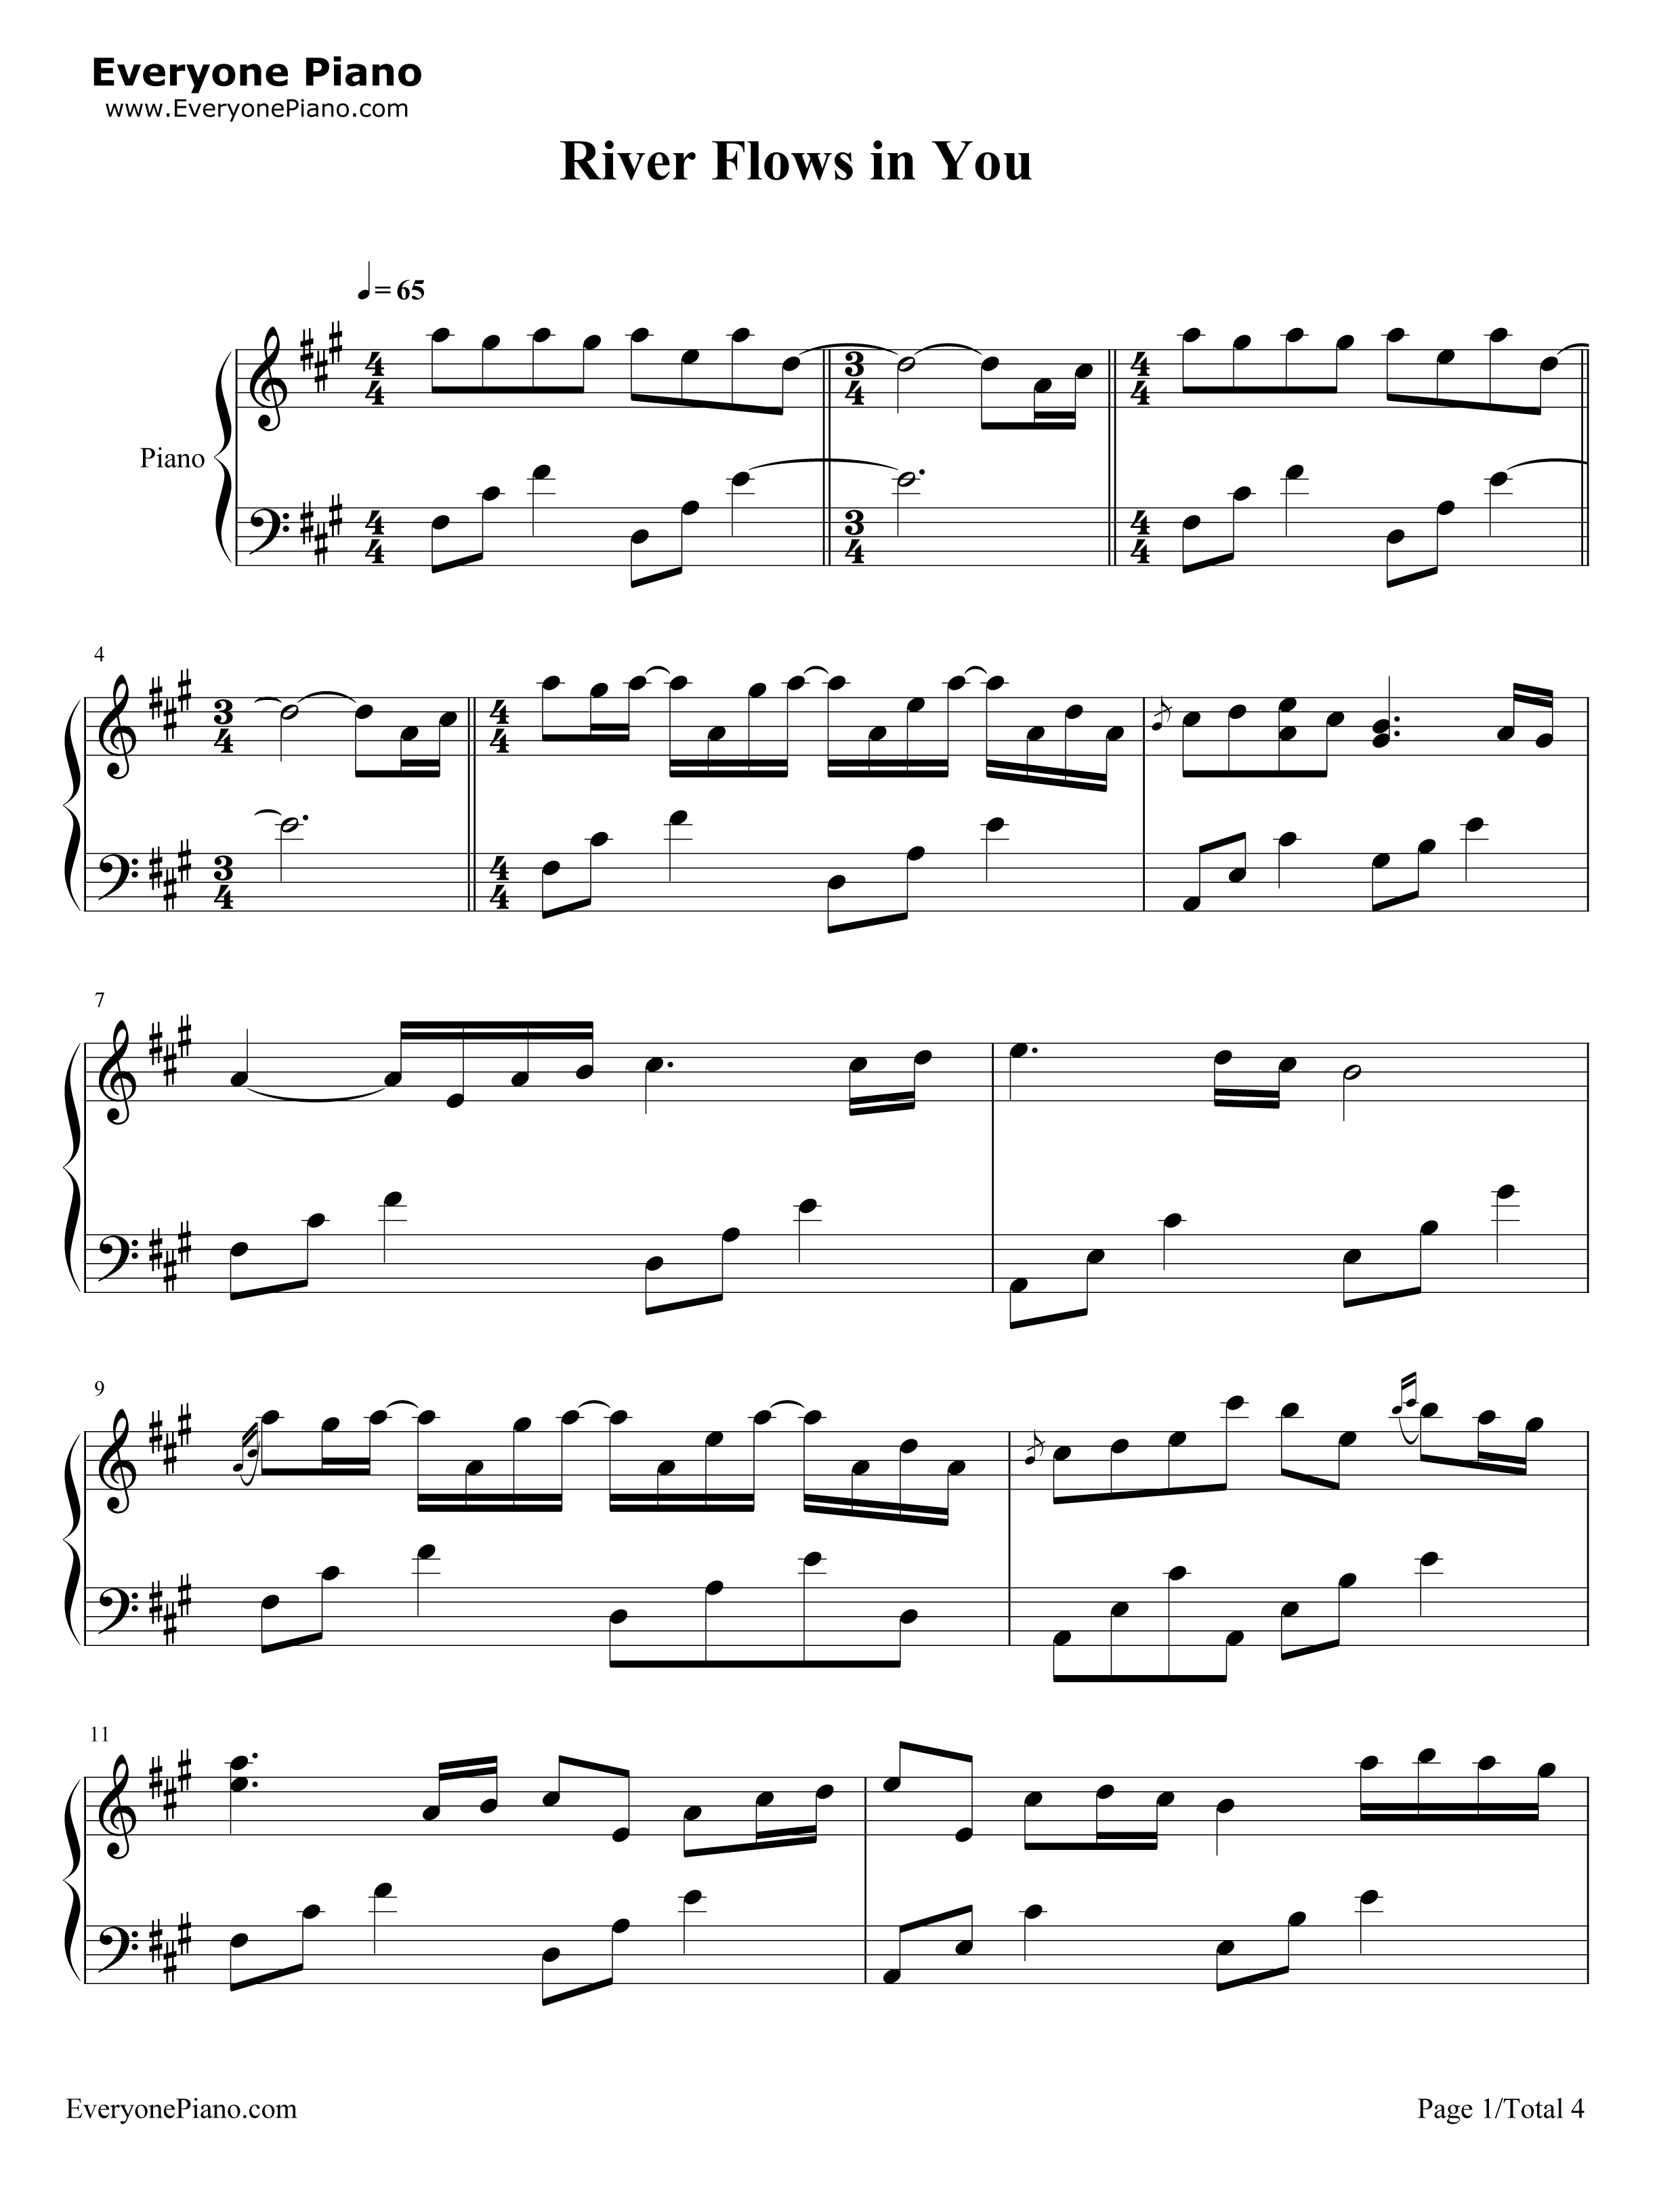 River Flows in You-Yiruma Stave Preview -EOP Online Music Stand in 2020 | River flow in you, Sheet music, Music